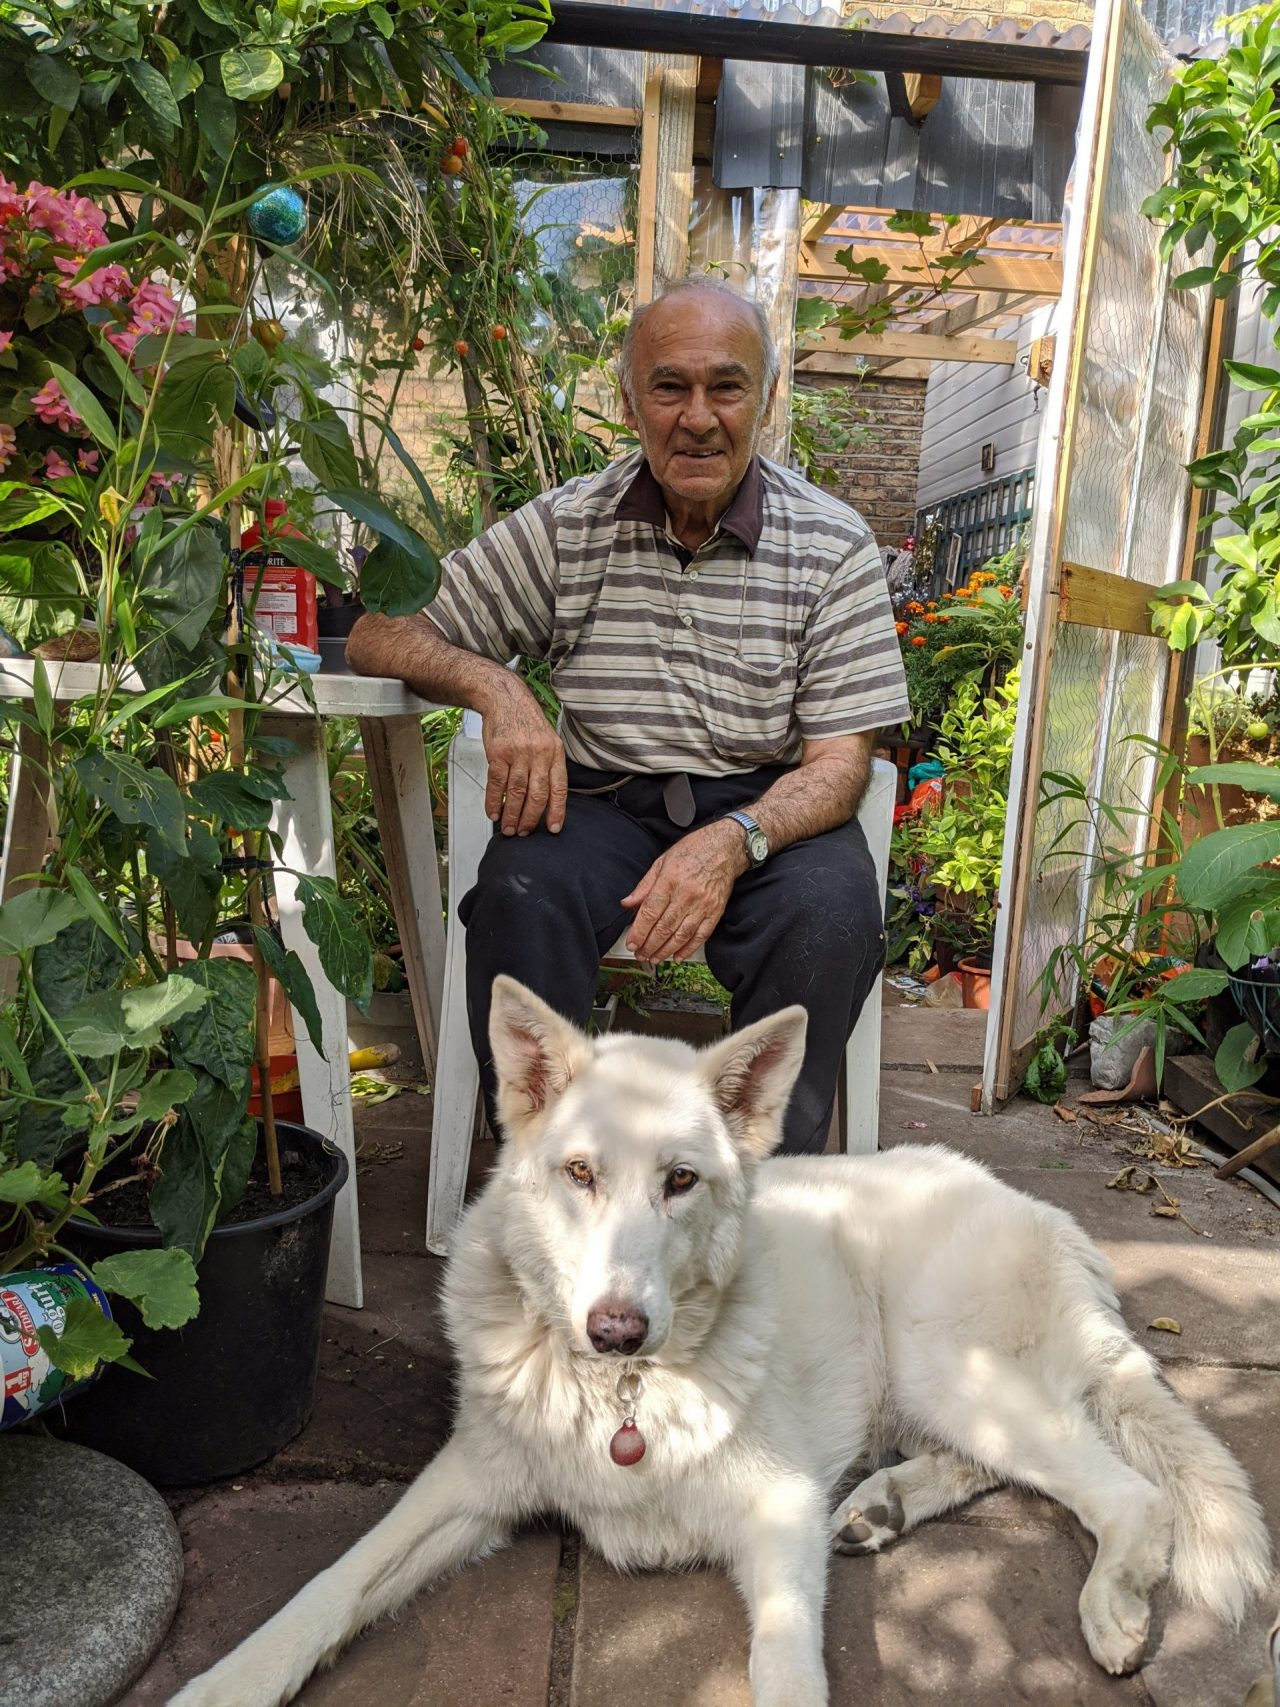 New charity aims to tackle isolation and loneliness in over 55s with help from furry friends